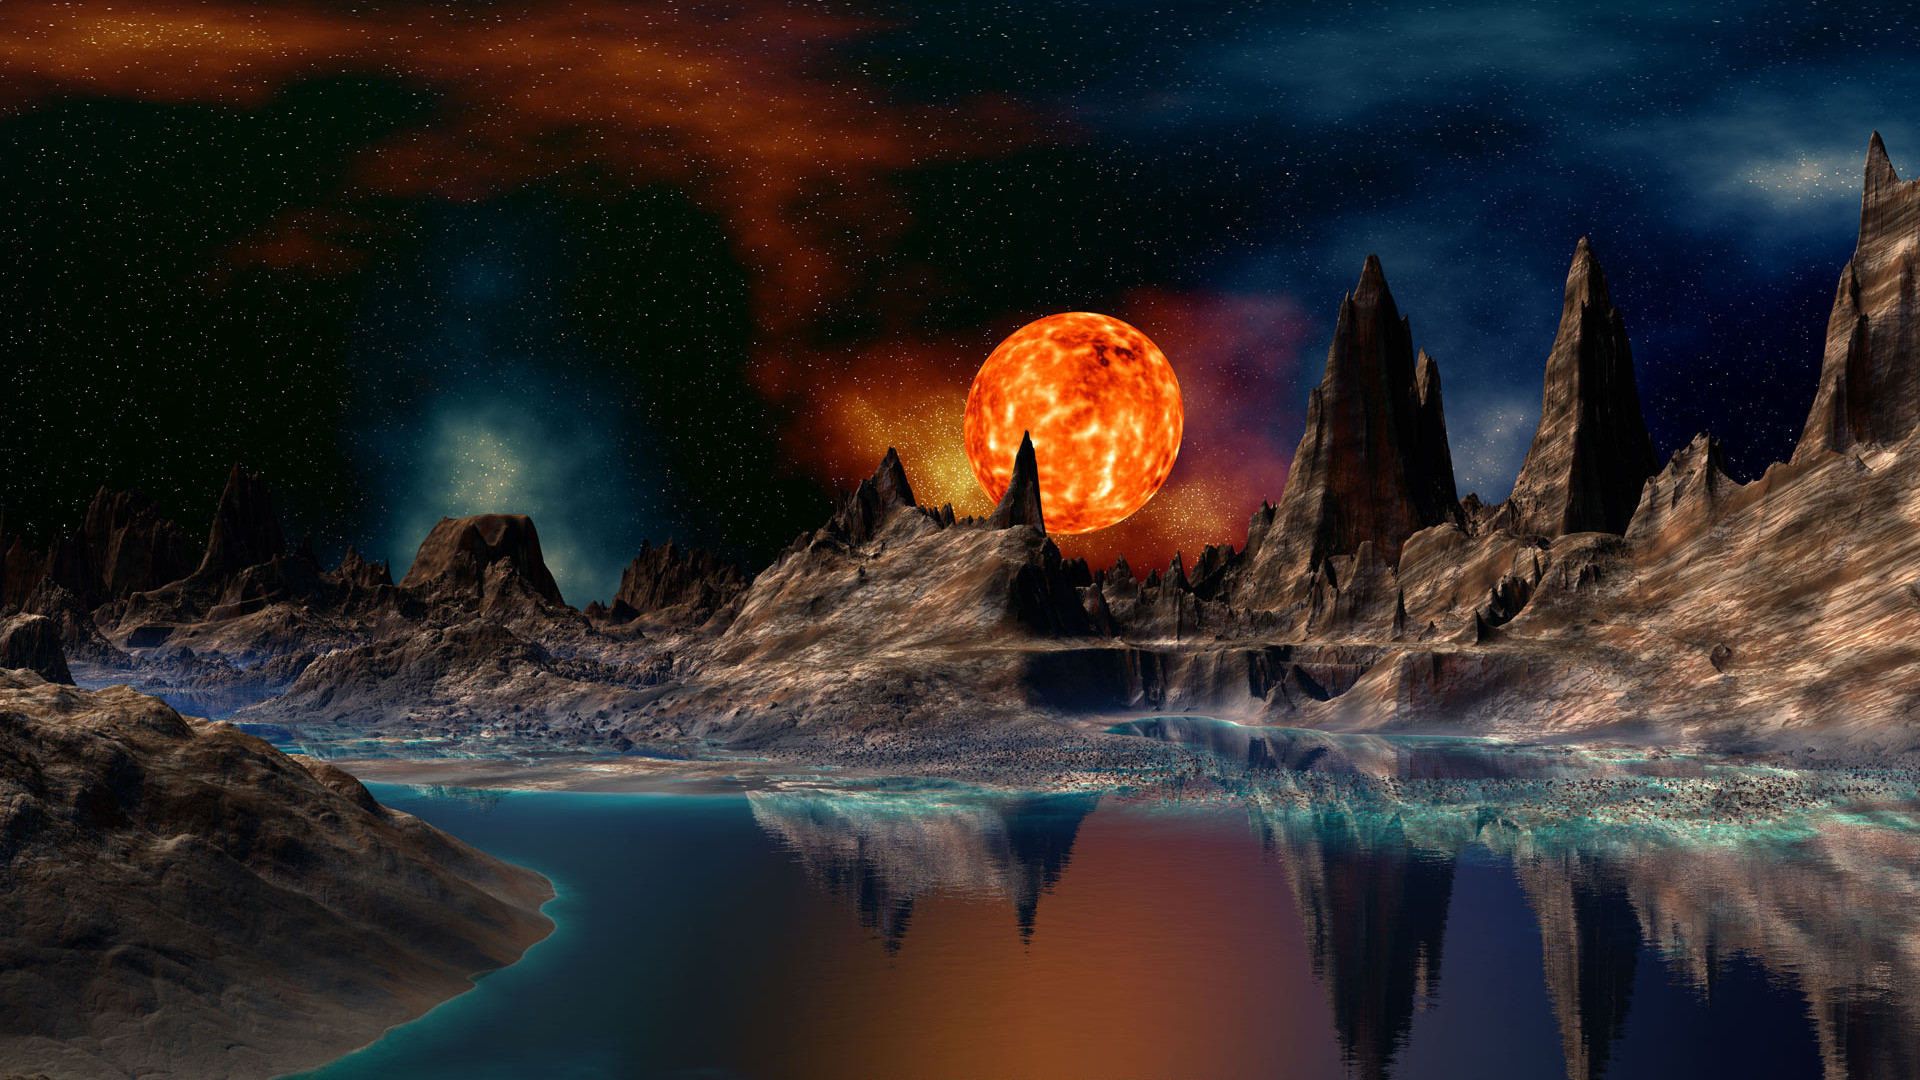 Space Fantasy View With Burning Planet Wallpaper